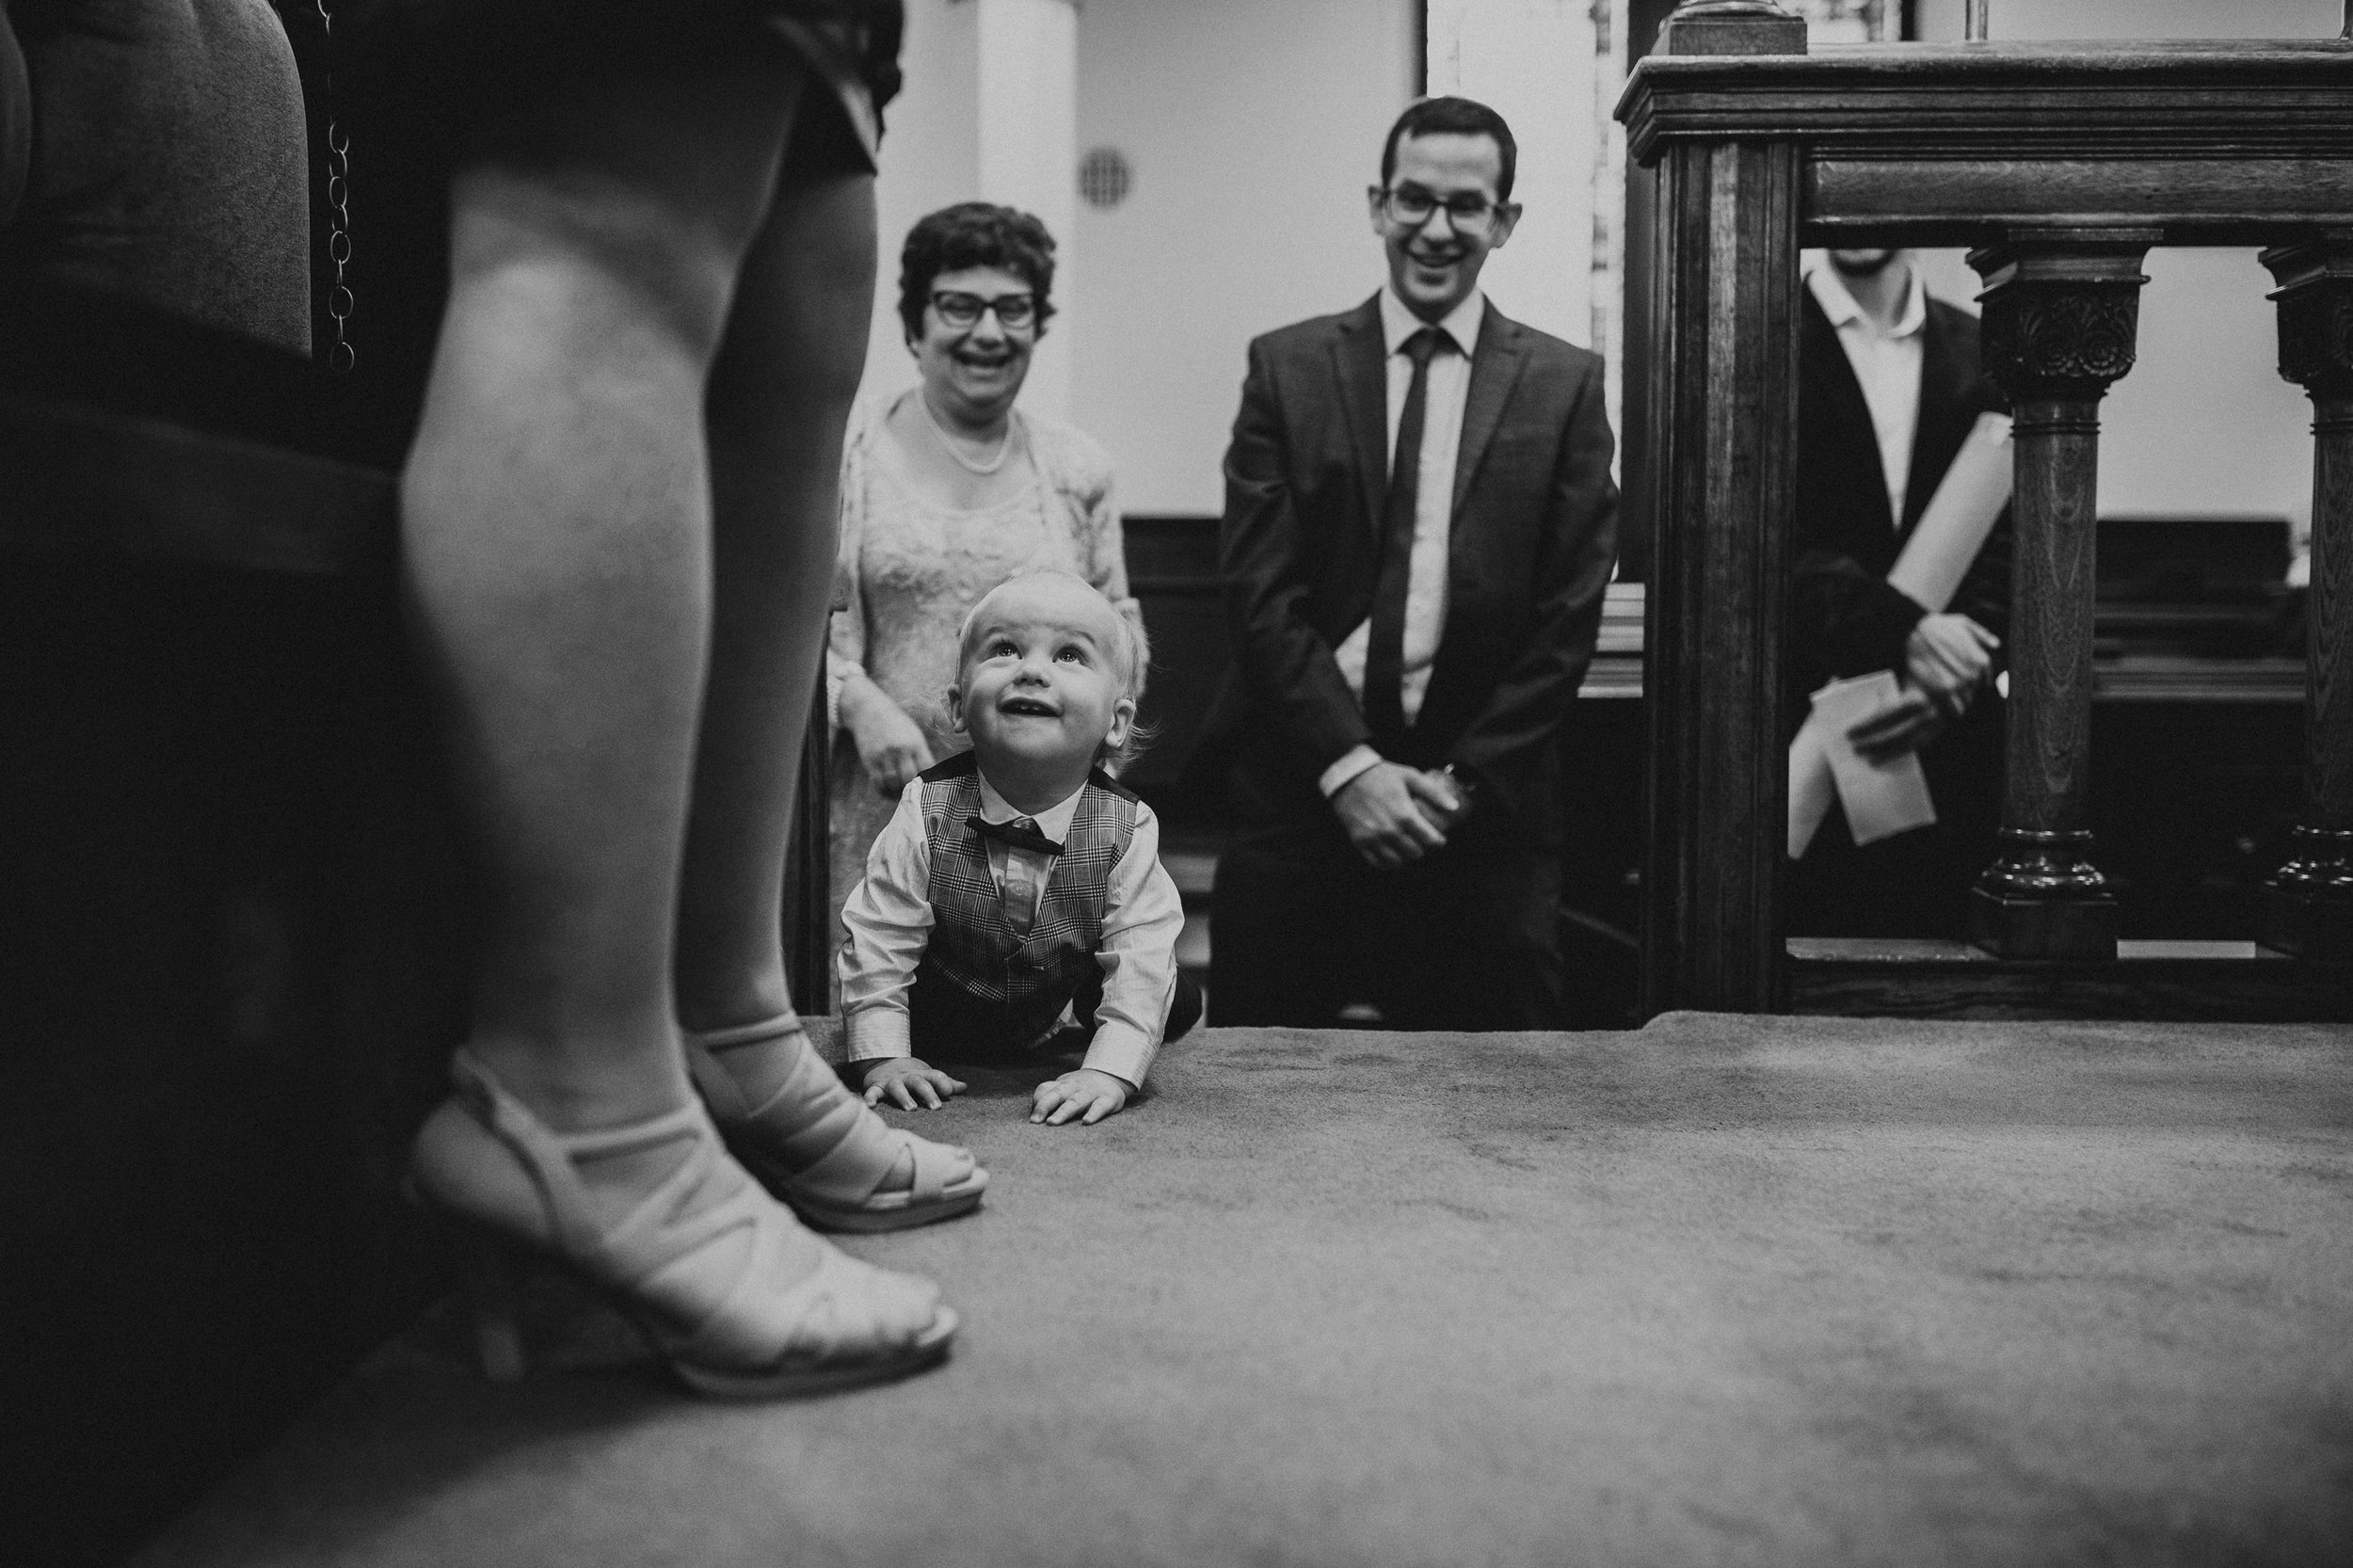 PJ_PHILLIPS_PHOTOGRAPHY_2018_SCOTLAND_WEDDING_PHOTOOGRAPHER_33.jpg